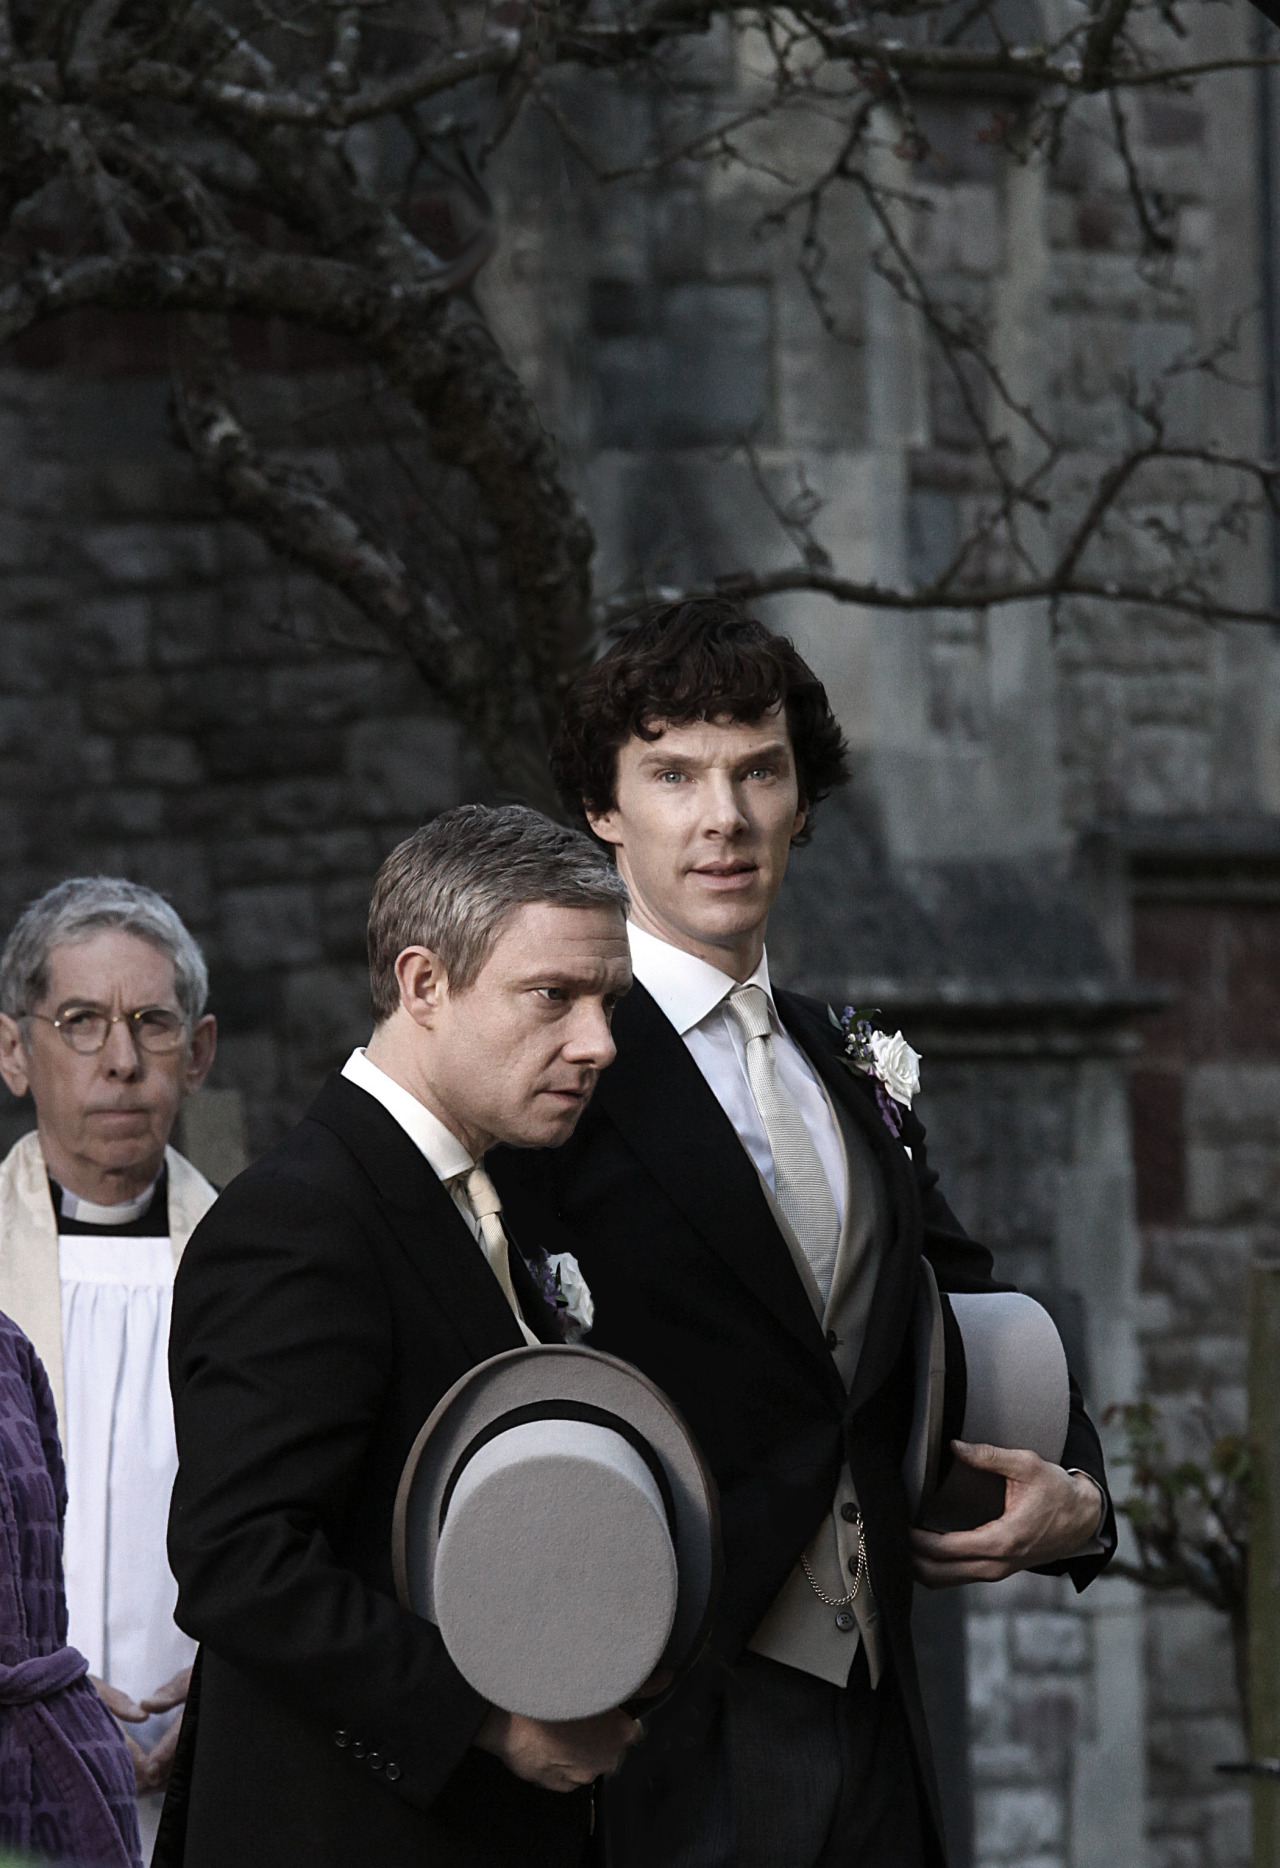 "wearejohnlocked:  verity-burns:  ""Where's your bride?"" ""Mary? Oh, she's not my bride."" ""What?"" ""No, she's just a friend. A good friend, mind you, but no more than that."" ""What are you talking about? You're marrying her in a little less than half an hour."" ""I don't think so."" ""Have you hit your head?"" ""Nope."" ""You're serious?"" ""I'm dead serious."" ""Then why on earth have we gone through this rigmarole?"" ""Got you here, didn't it? And wearing a TIE, no less."" ""Of course I'm wearing a tie - I thought you were getting married today!"" ""Oh, I am."" ""What?"" ""Or at least, I hope to be."" ""You are making no sense whatsoever."" ""I know how you feel about me."" ""No you don't. How do you?"" ""Suspected soon after you came back, actually. But I couldn't be sure until I saw your face when I said I was leaving."" ""So this whole thing has been… what? Punishment?"" ""Would you rather I'd punched you?"" ""You did punch me!"" ""Well, you deserved it."" ""And did I deserve this? To have to stand here and watch while you… Oh."" ""Oh?"" ""You're not marrying Mary?"" ""I'm really not."" ""But you are getting married."" ""Well, that rather depends."" ""On?"" ""On whether or not you'll have me."" ""…"" ""Sherlock?"" ""But… One can't just turn up in front of a vicar and get married, John. There are formalities…"" ""It's amazing what you can arrange when the British government owes you a favour."" ""But… Me?"" ""Of course you."" ""But we're not… I've never even…"" ""If you want me. So do you, Sherlock? Do you want to marry me?"" . . ""I do.""  EVER SINCE THESE PICTURES APPEARED I'VE BEEN WAITING FOR SOMETHING LIKE THIS"